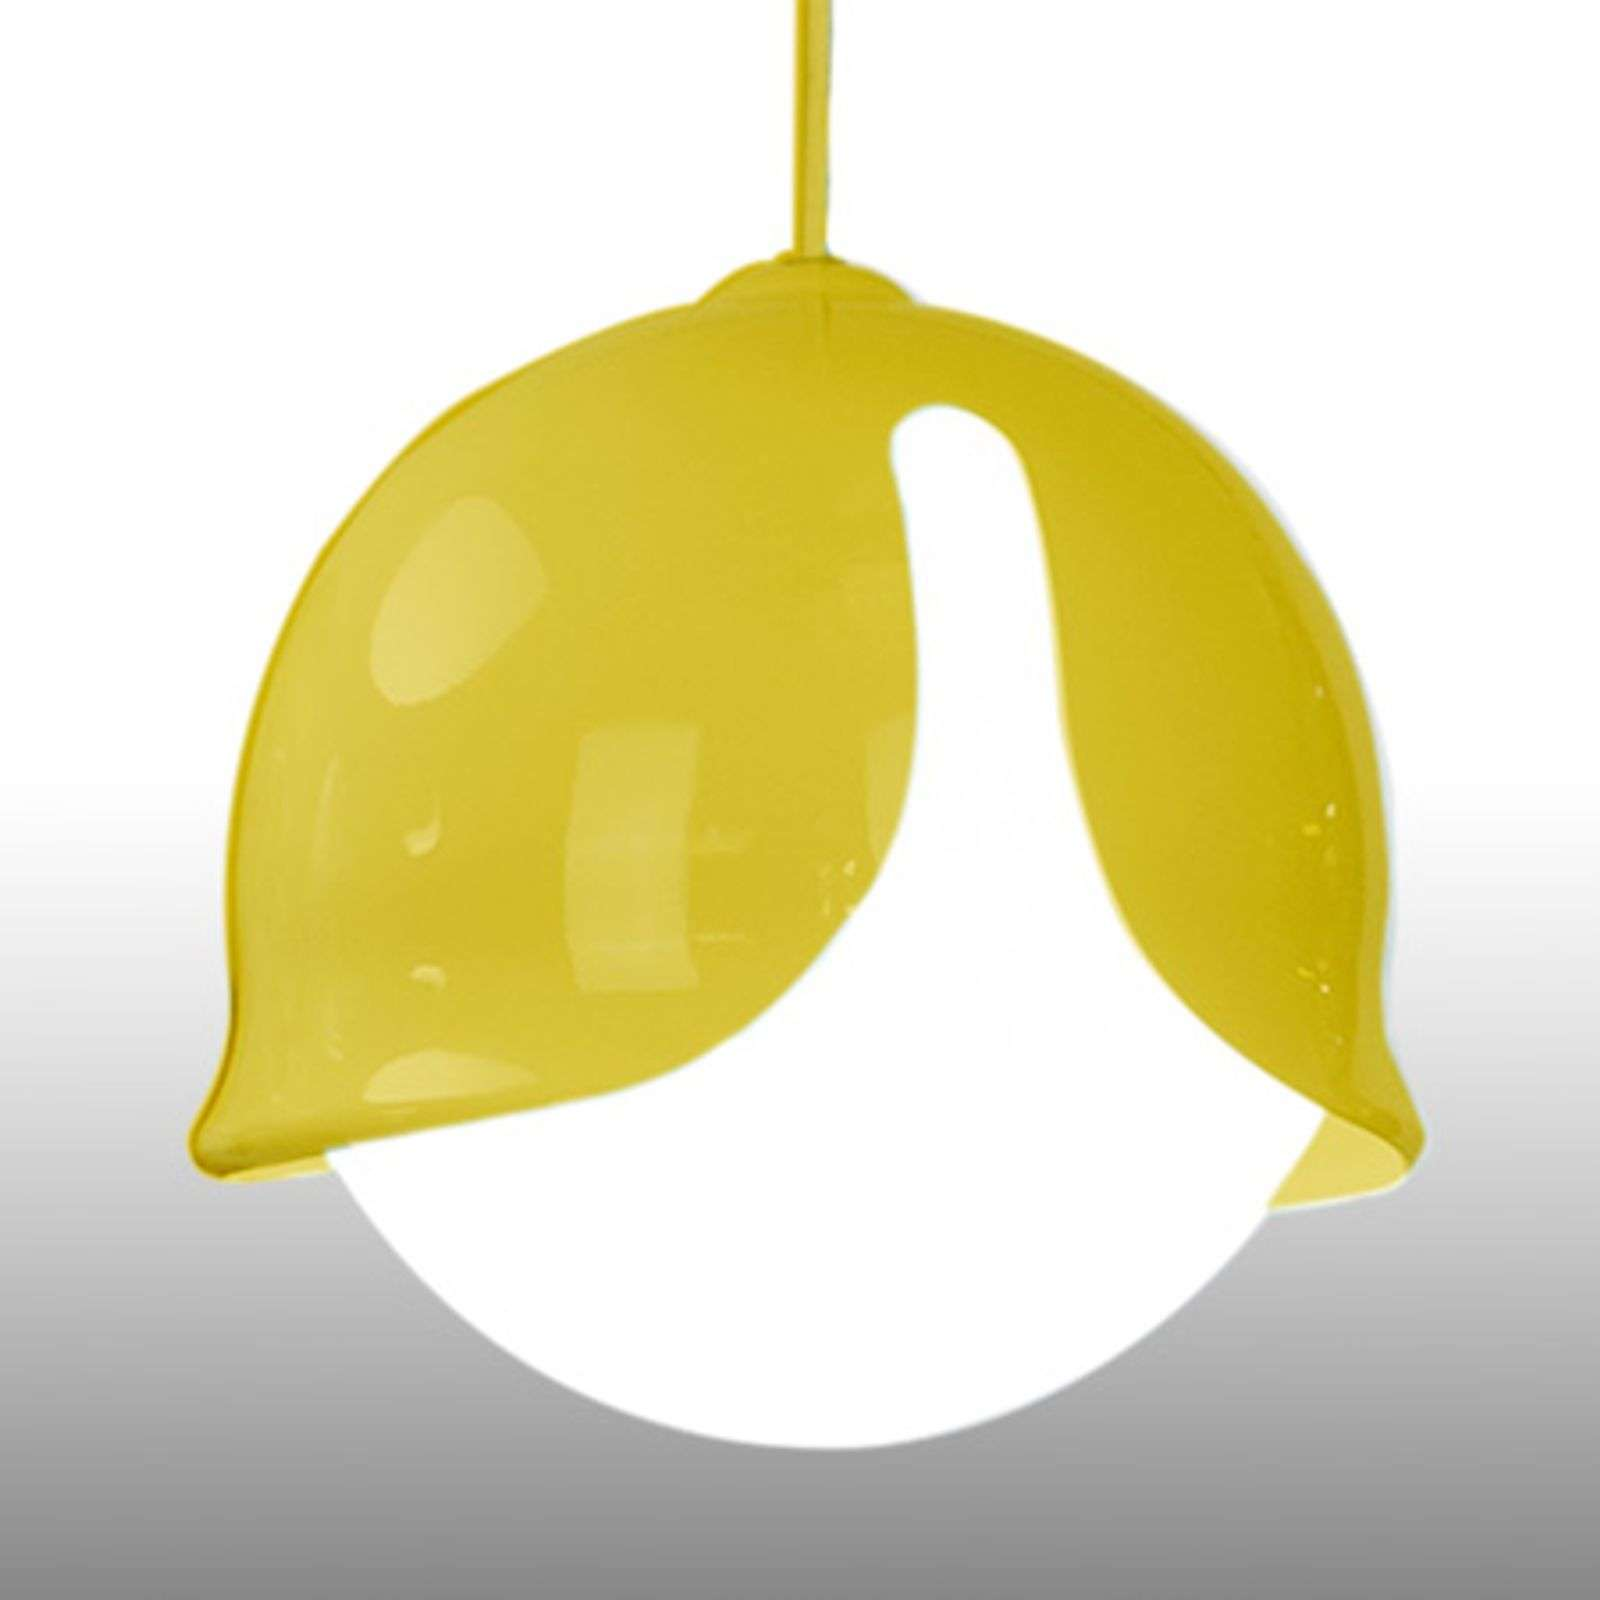 Innermost Snowdrop - suspension design, jaune